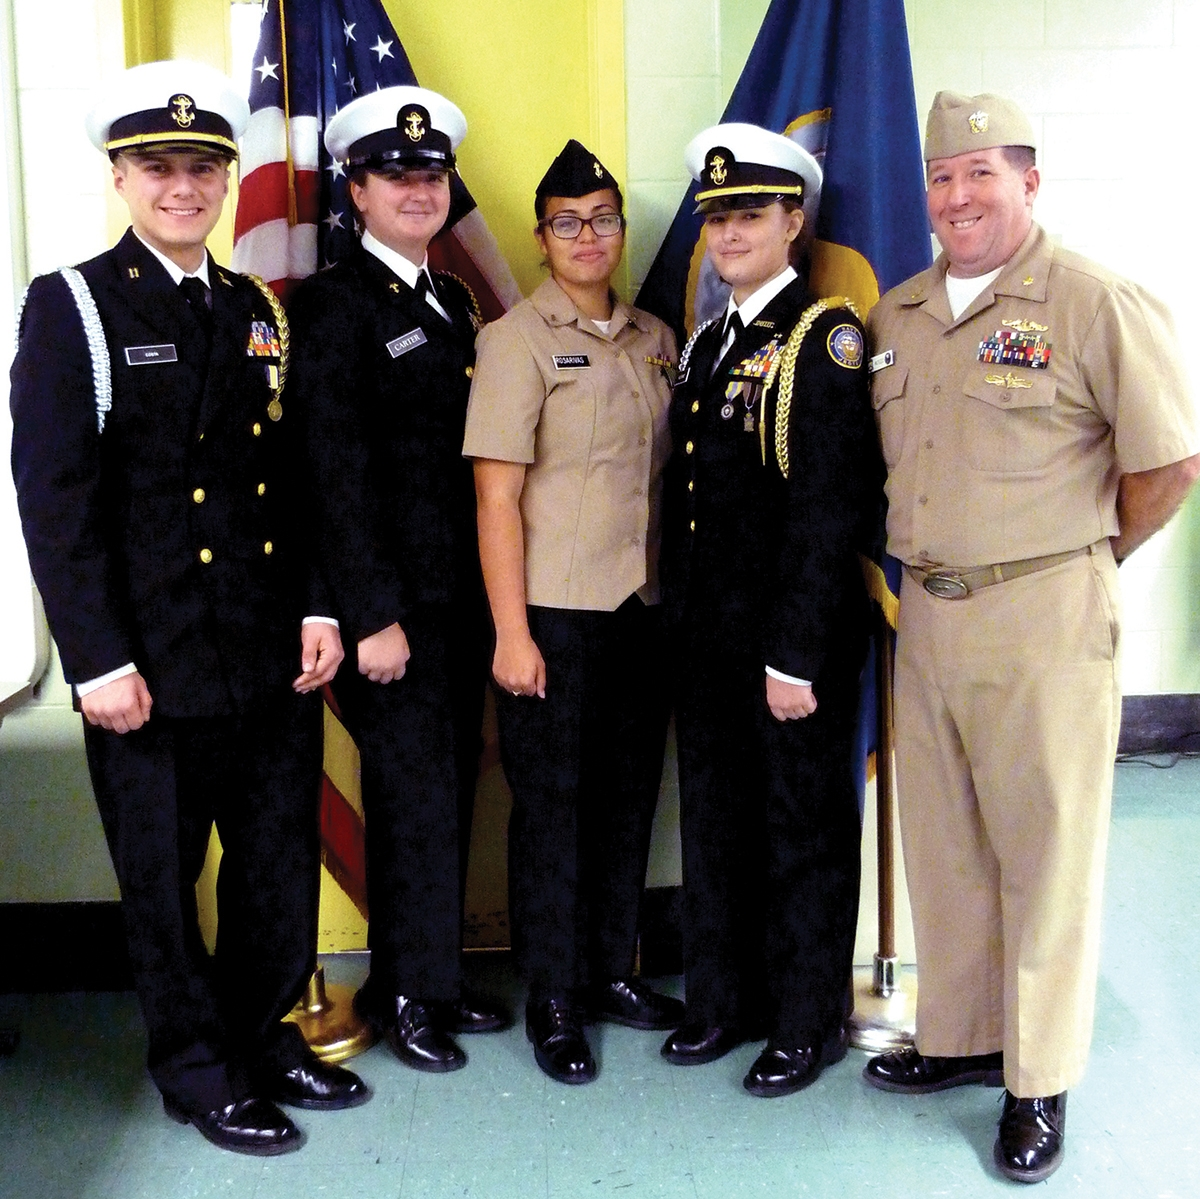 The Navy Junior Reserve Officer Training Corps at New London High School includes, from left, Administrative Officer Nick Costa, Chief Petty officer Gwen Carter, Seaman Apprentice Nathalie Rosa Rivas Colon and Executive Officer Morgan Slusarz, under the guidance of Lieutenant Commander Carl Matteucci (Ret.).